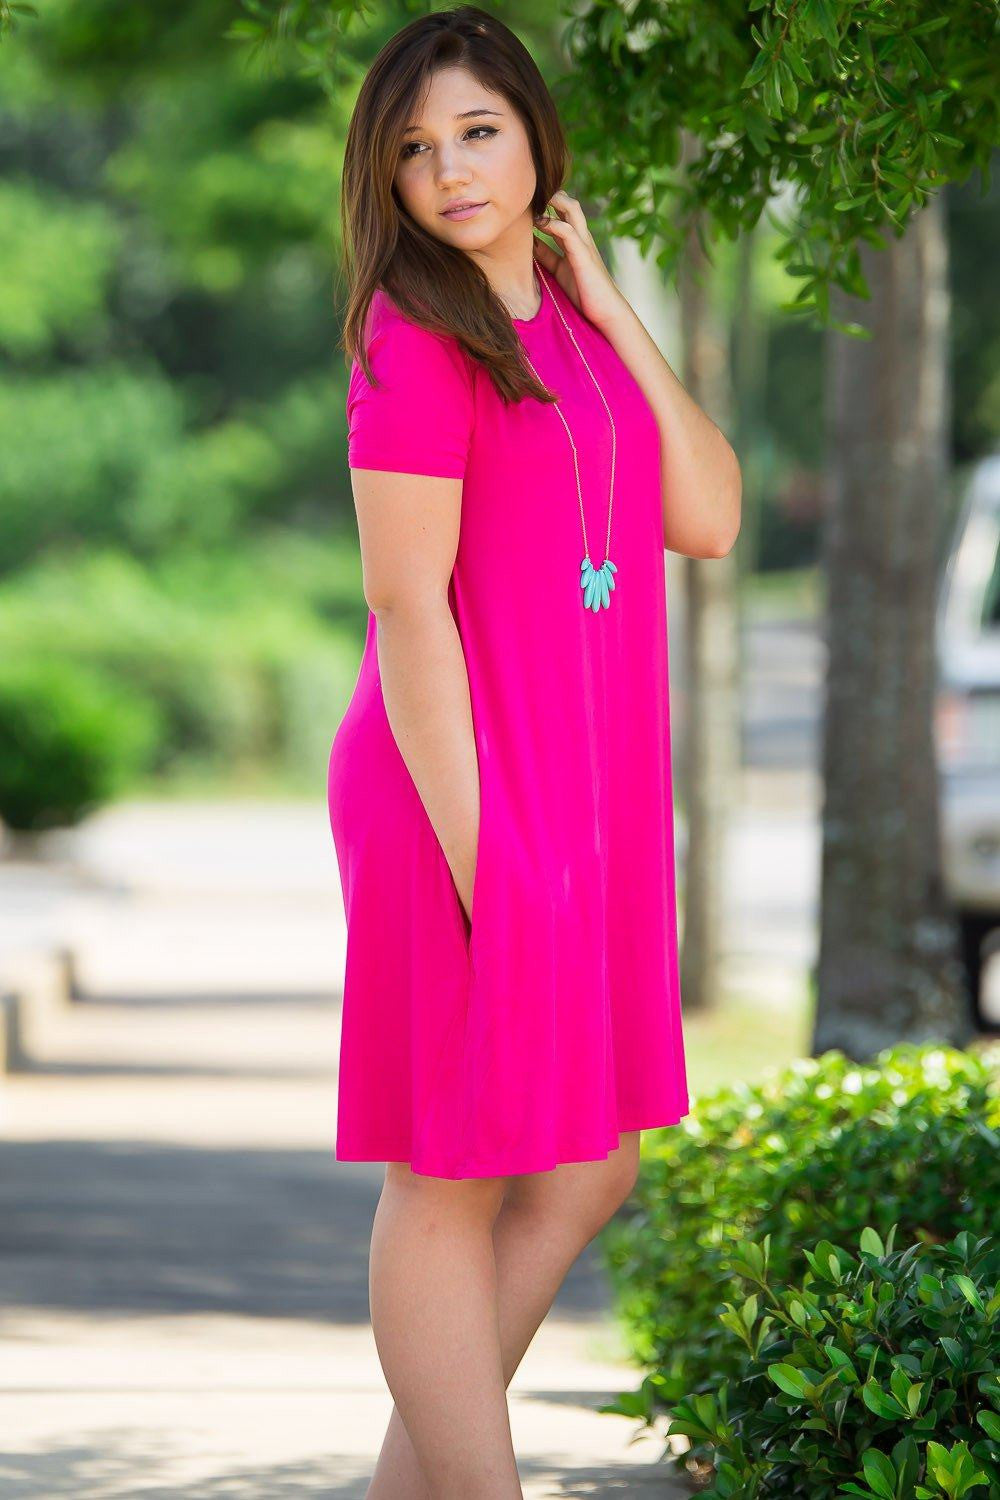 Piko Short Sleeve Swing Dress - Fuchsia - Piko Clothing